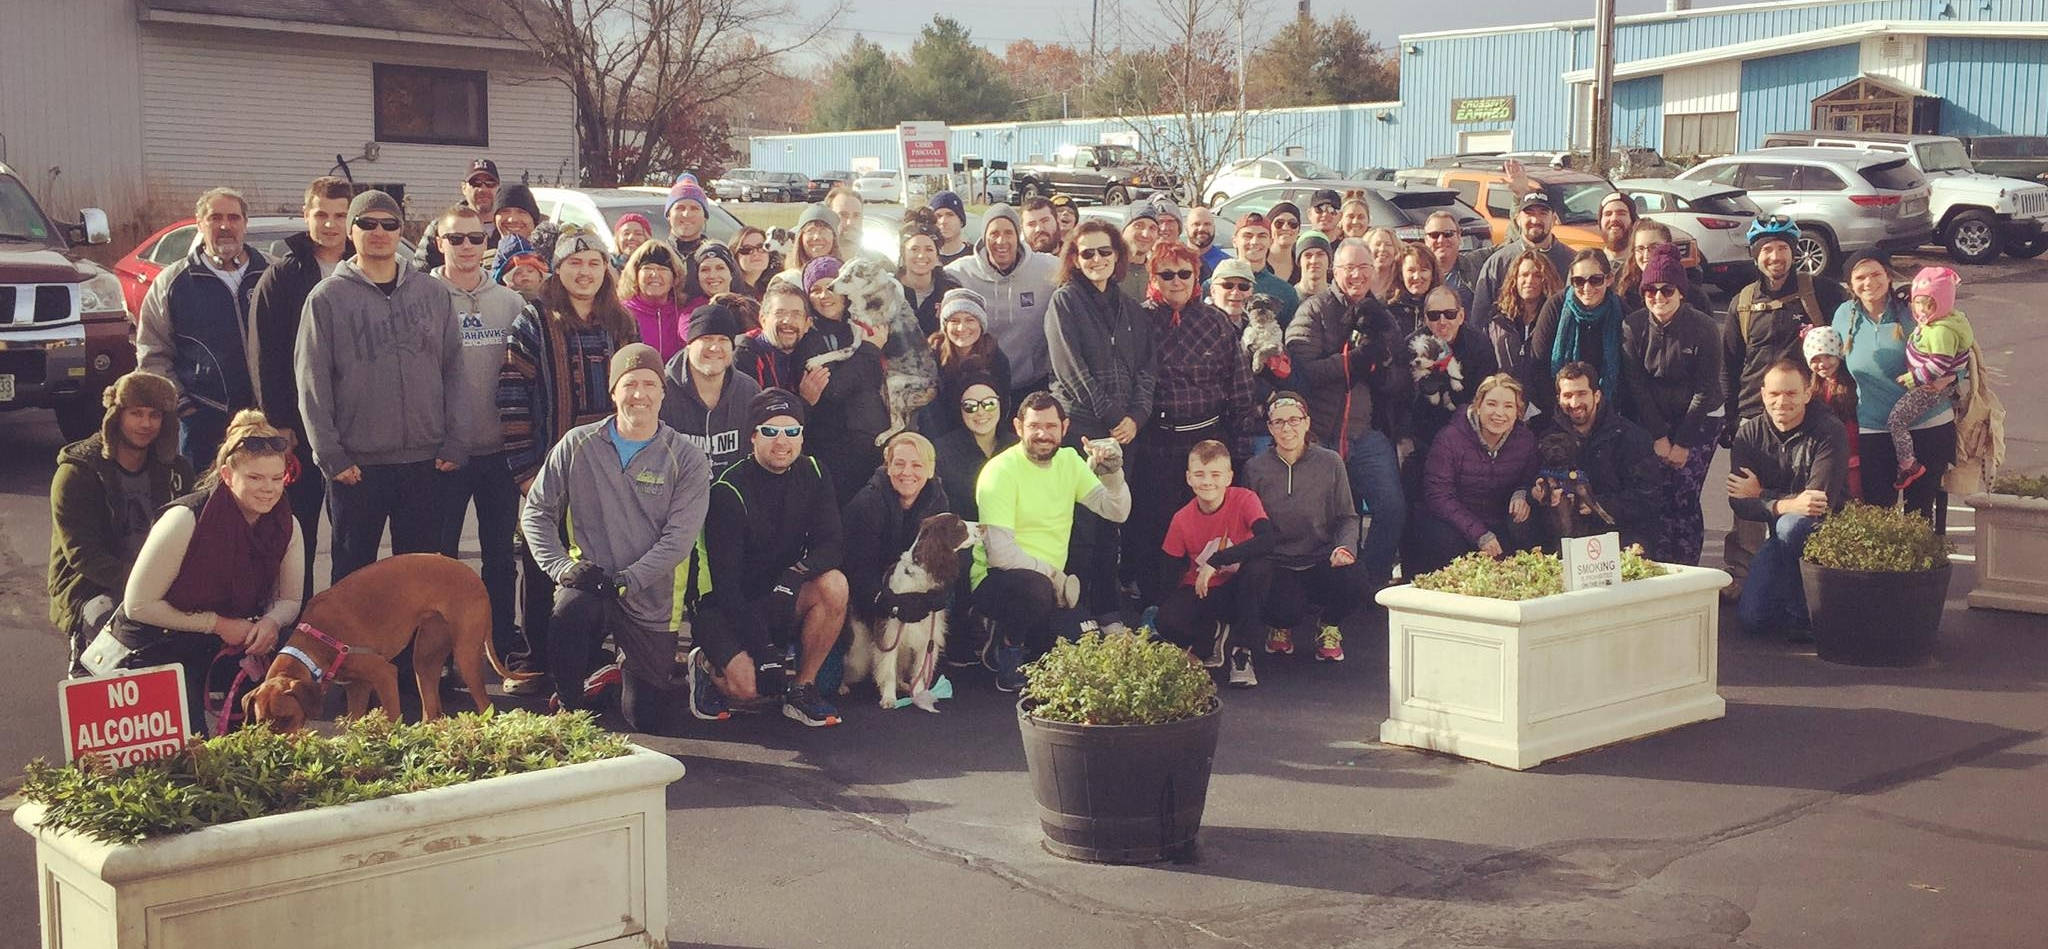 Our biggest Rafiki Run is put on by the Able Ebenezer Brewing Company and Heather Martin in Merrimack, NH